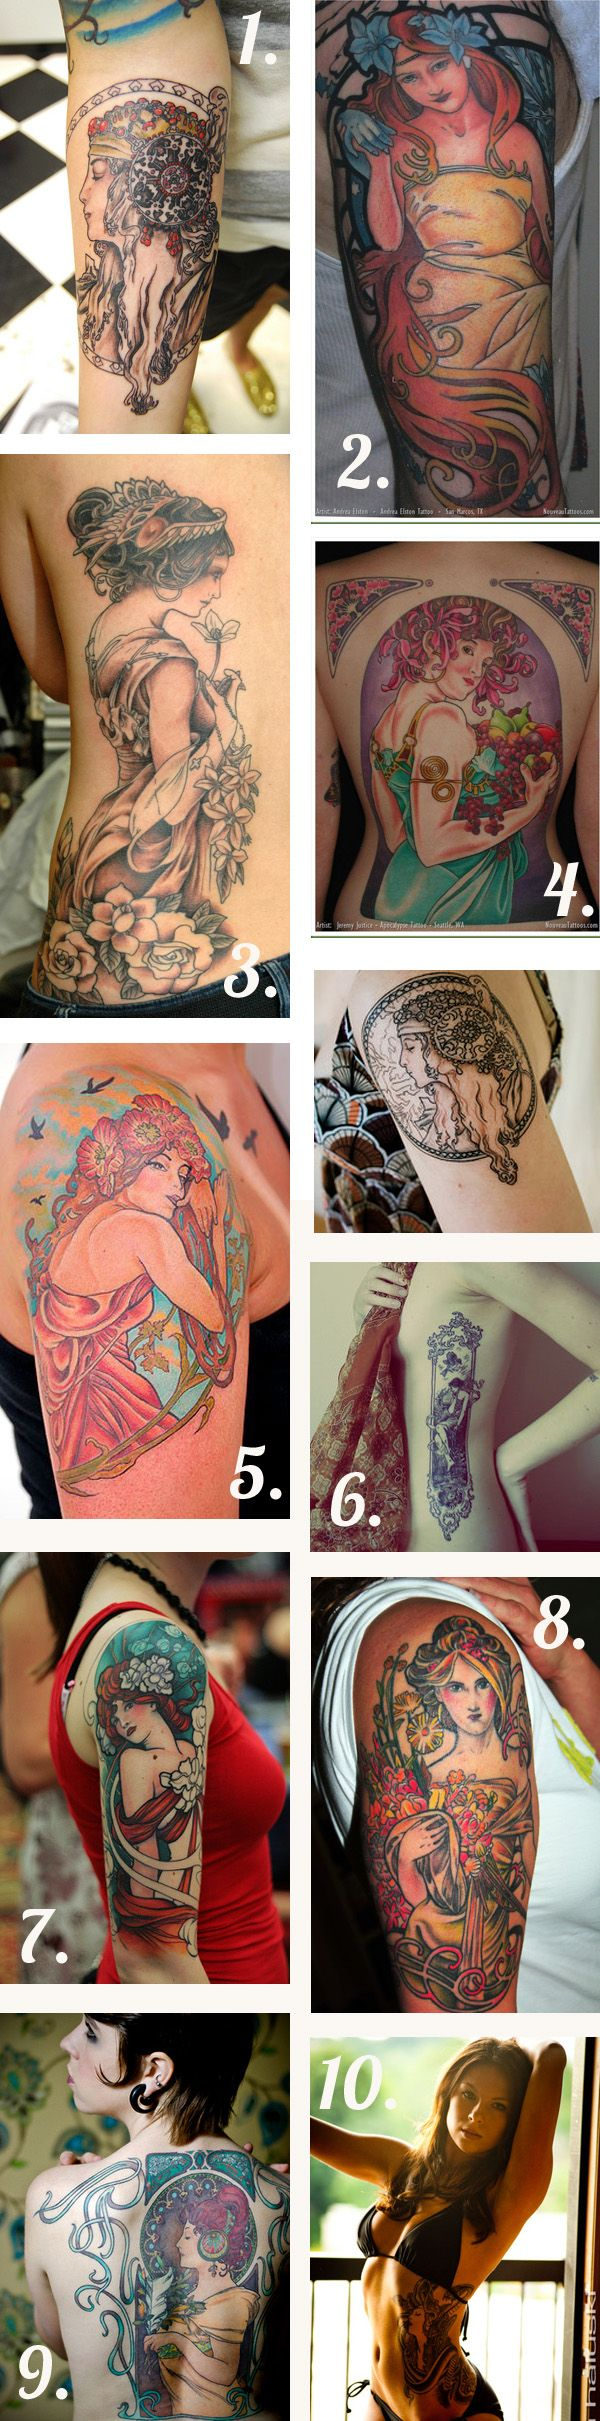 art nouveau tattoos! Some of the shading on these is a little to contrasting for my liking but love the style